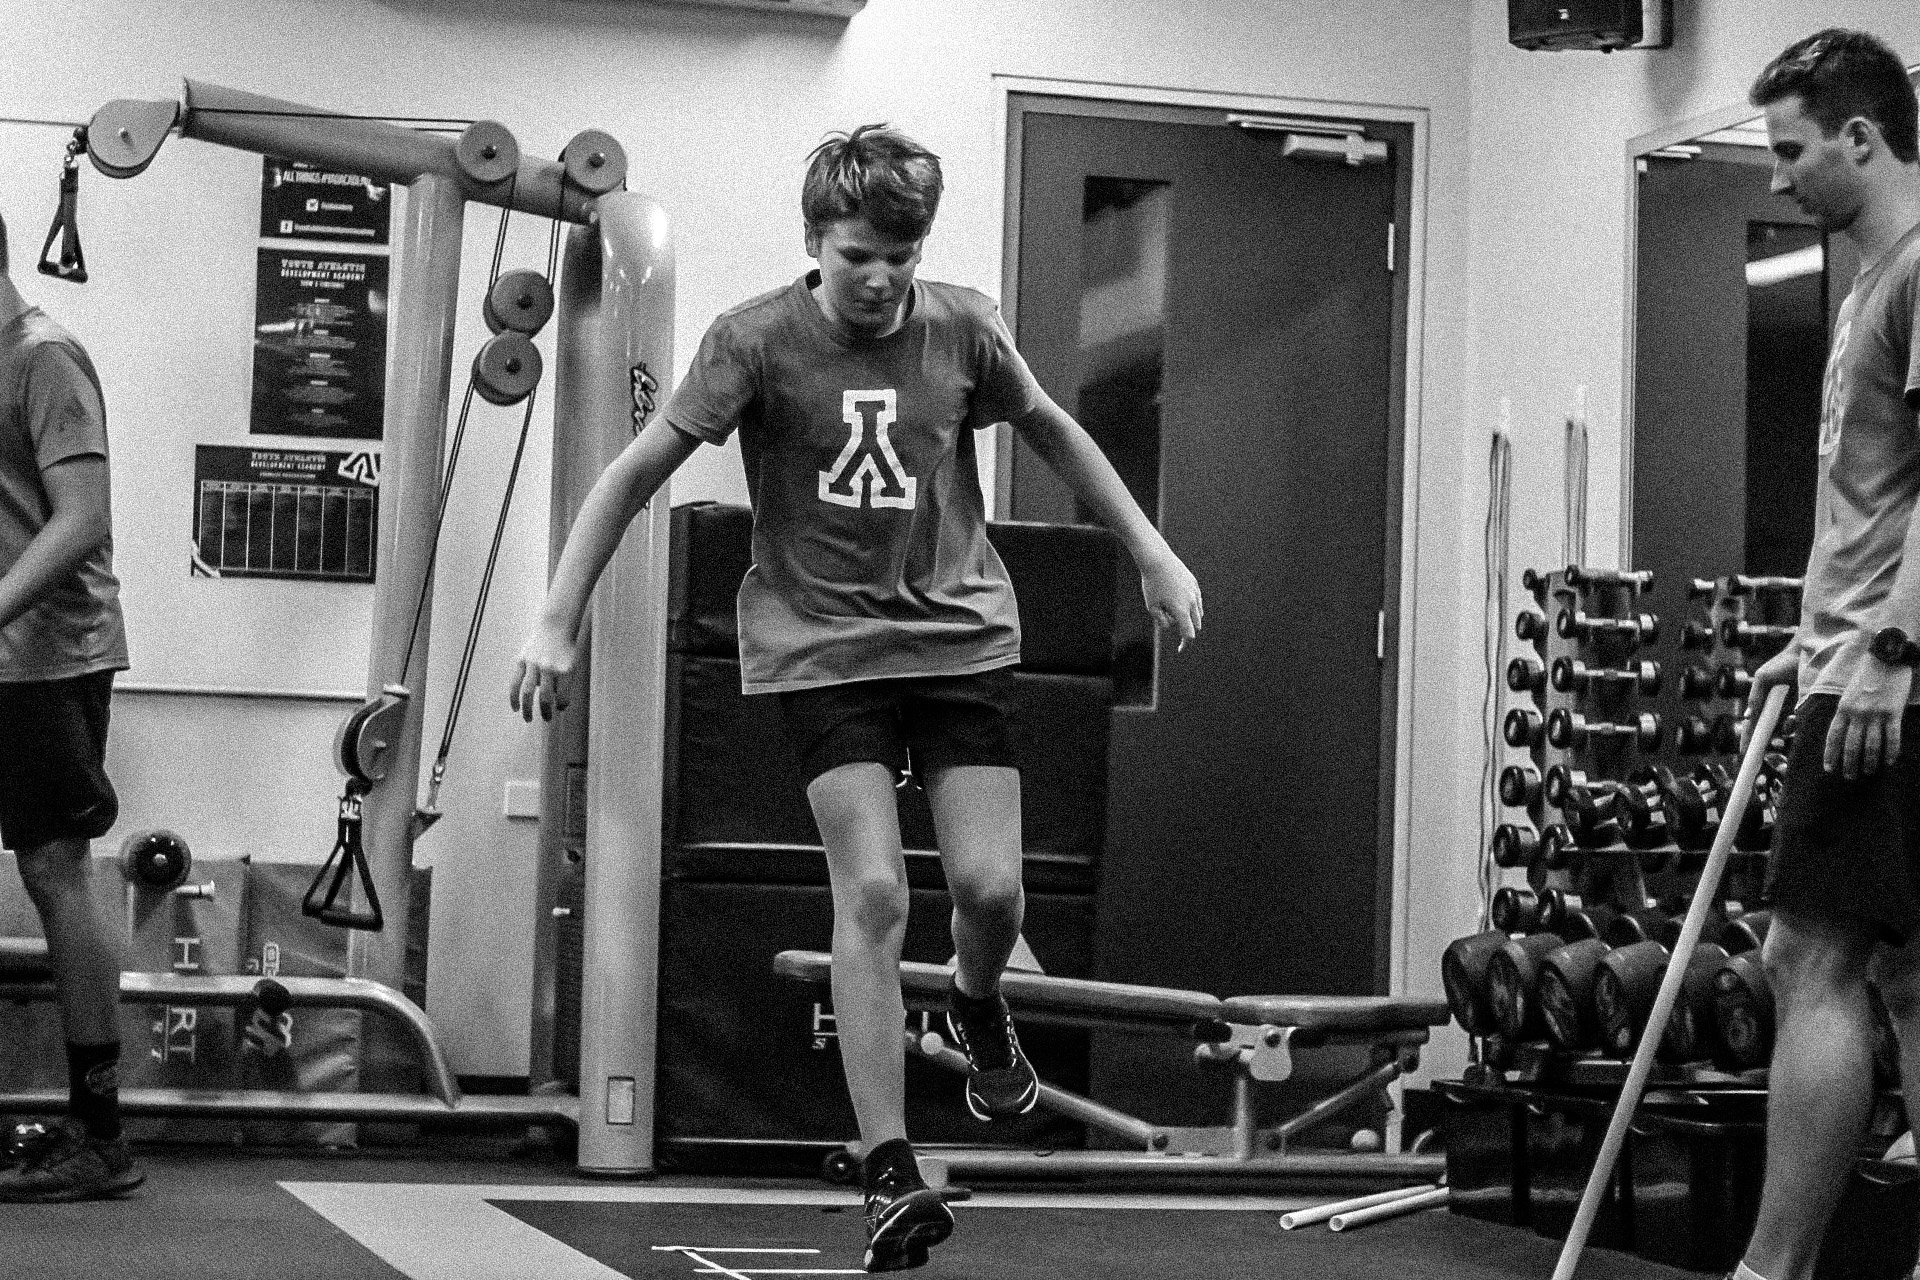 ASK COACH HARRY: HOW MANY TIMES SHOULD I TRAIN PER WEEK?